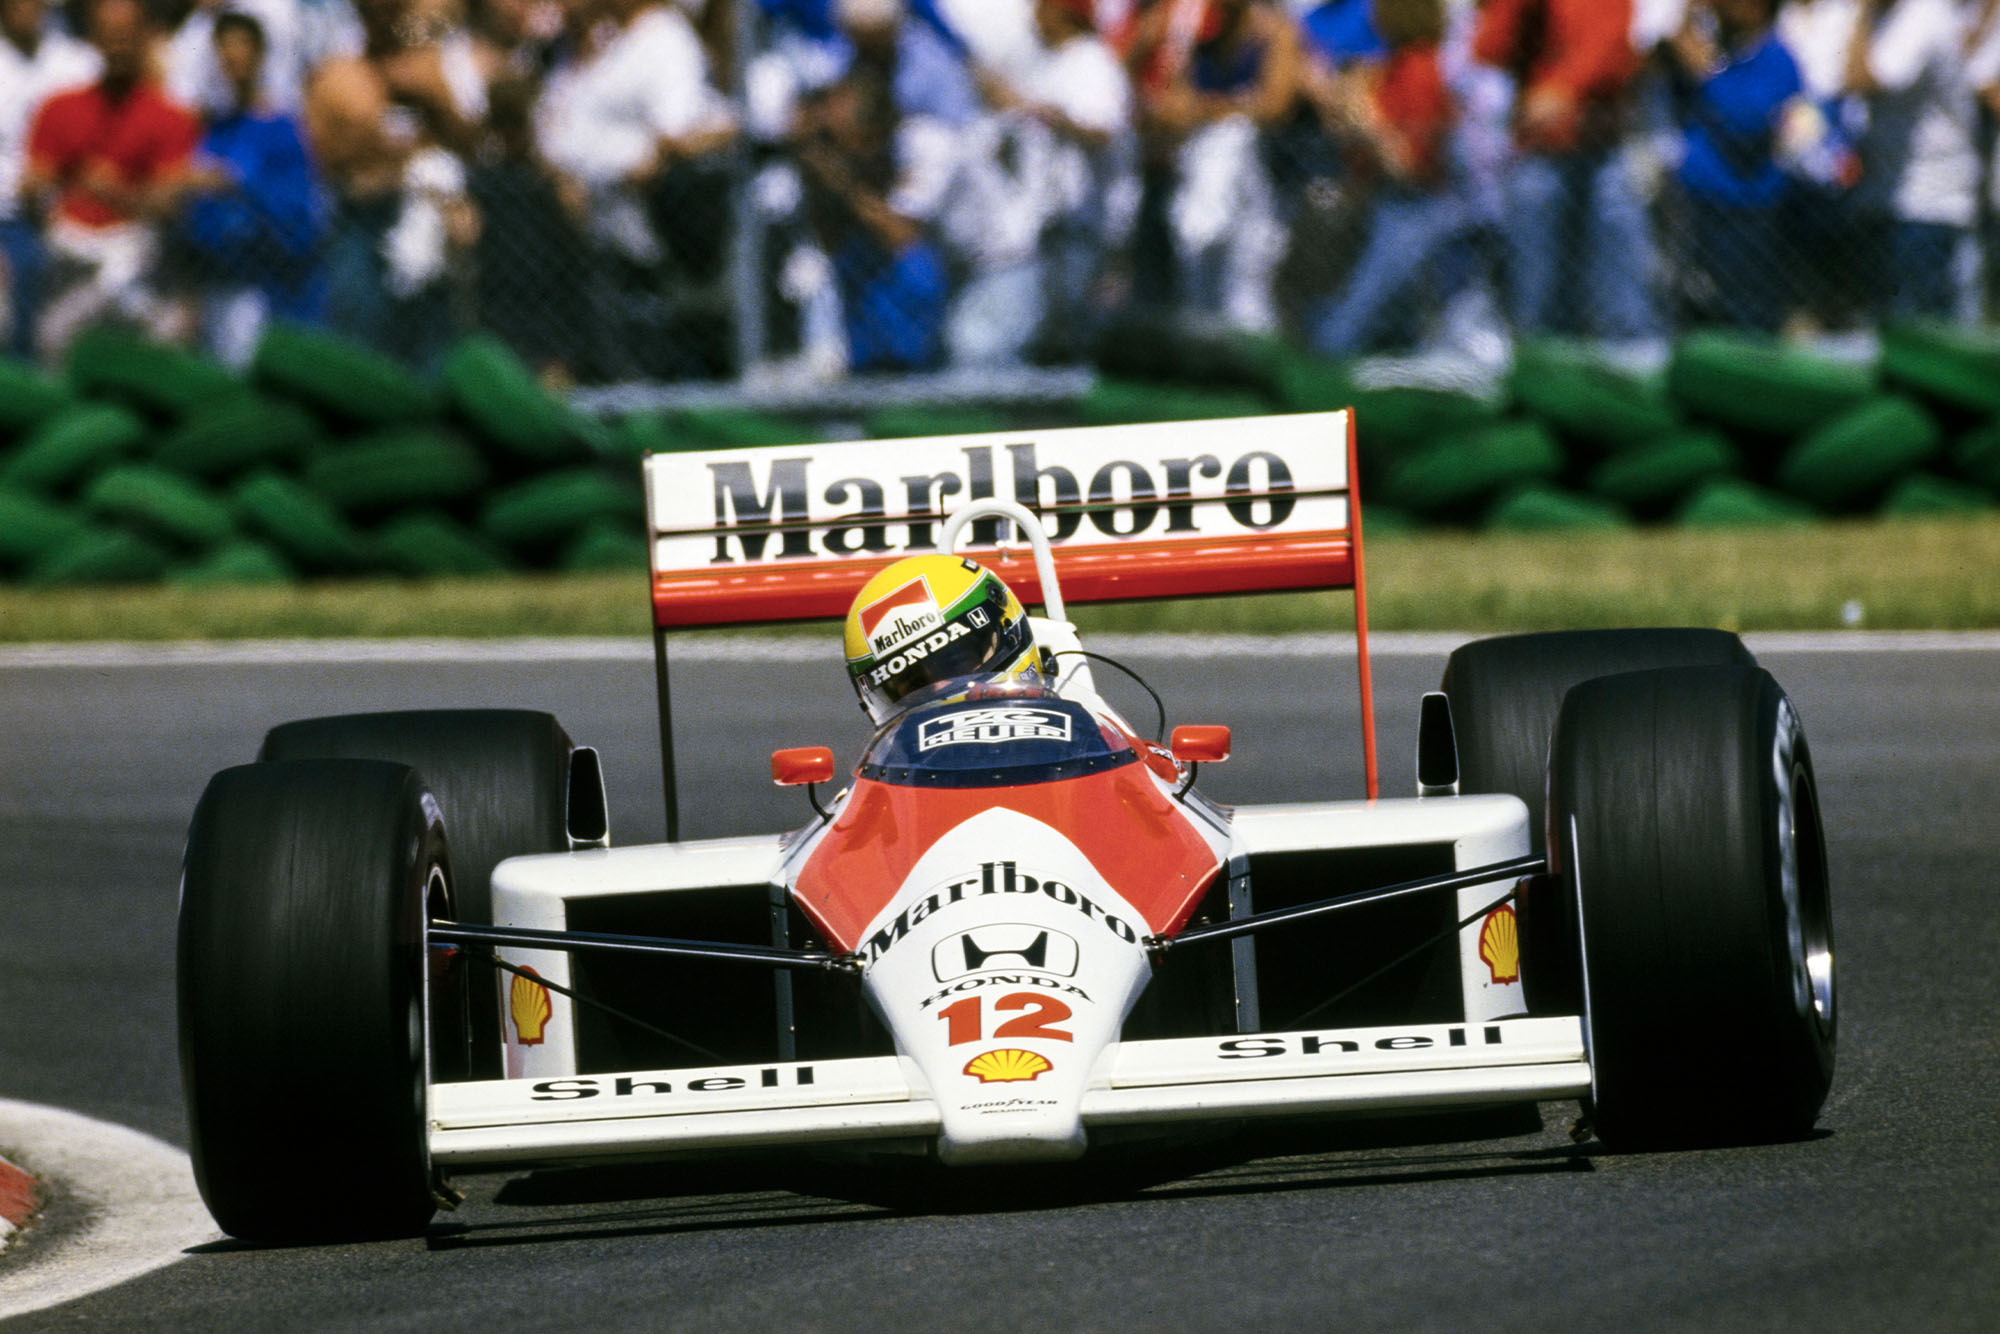 1988 CAN GP feature